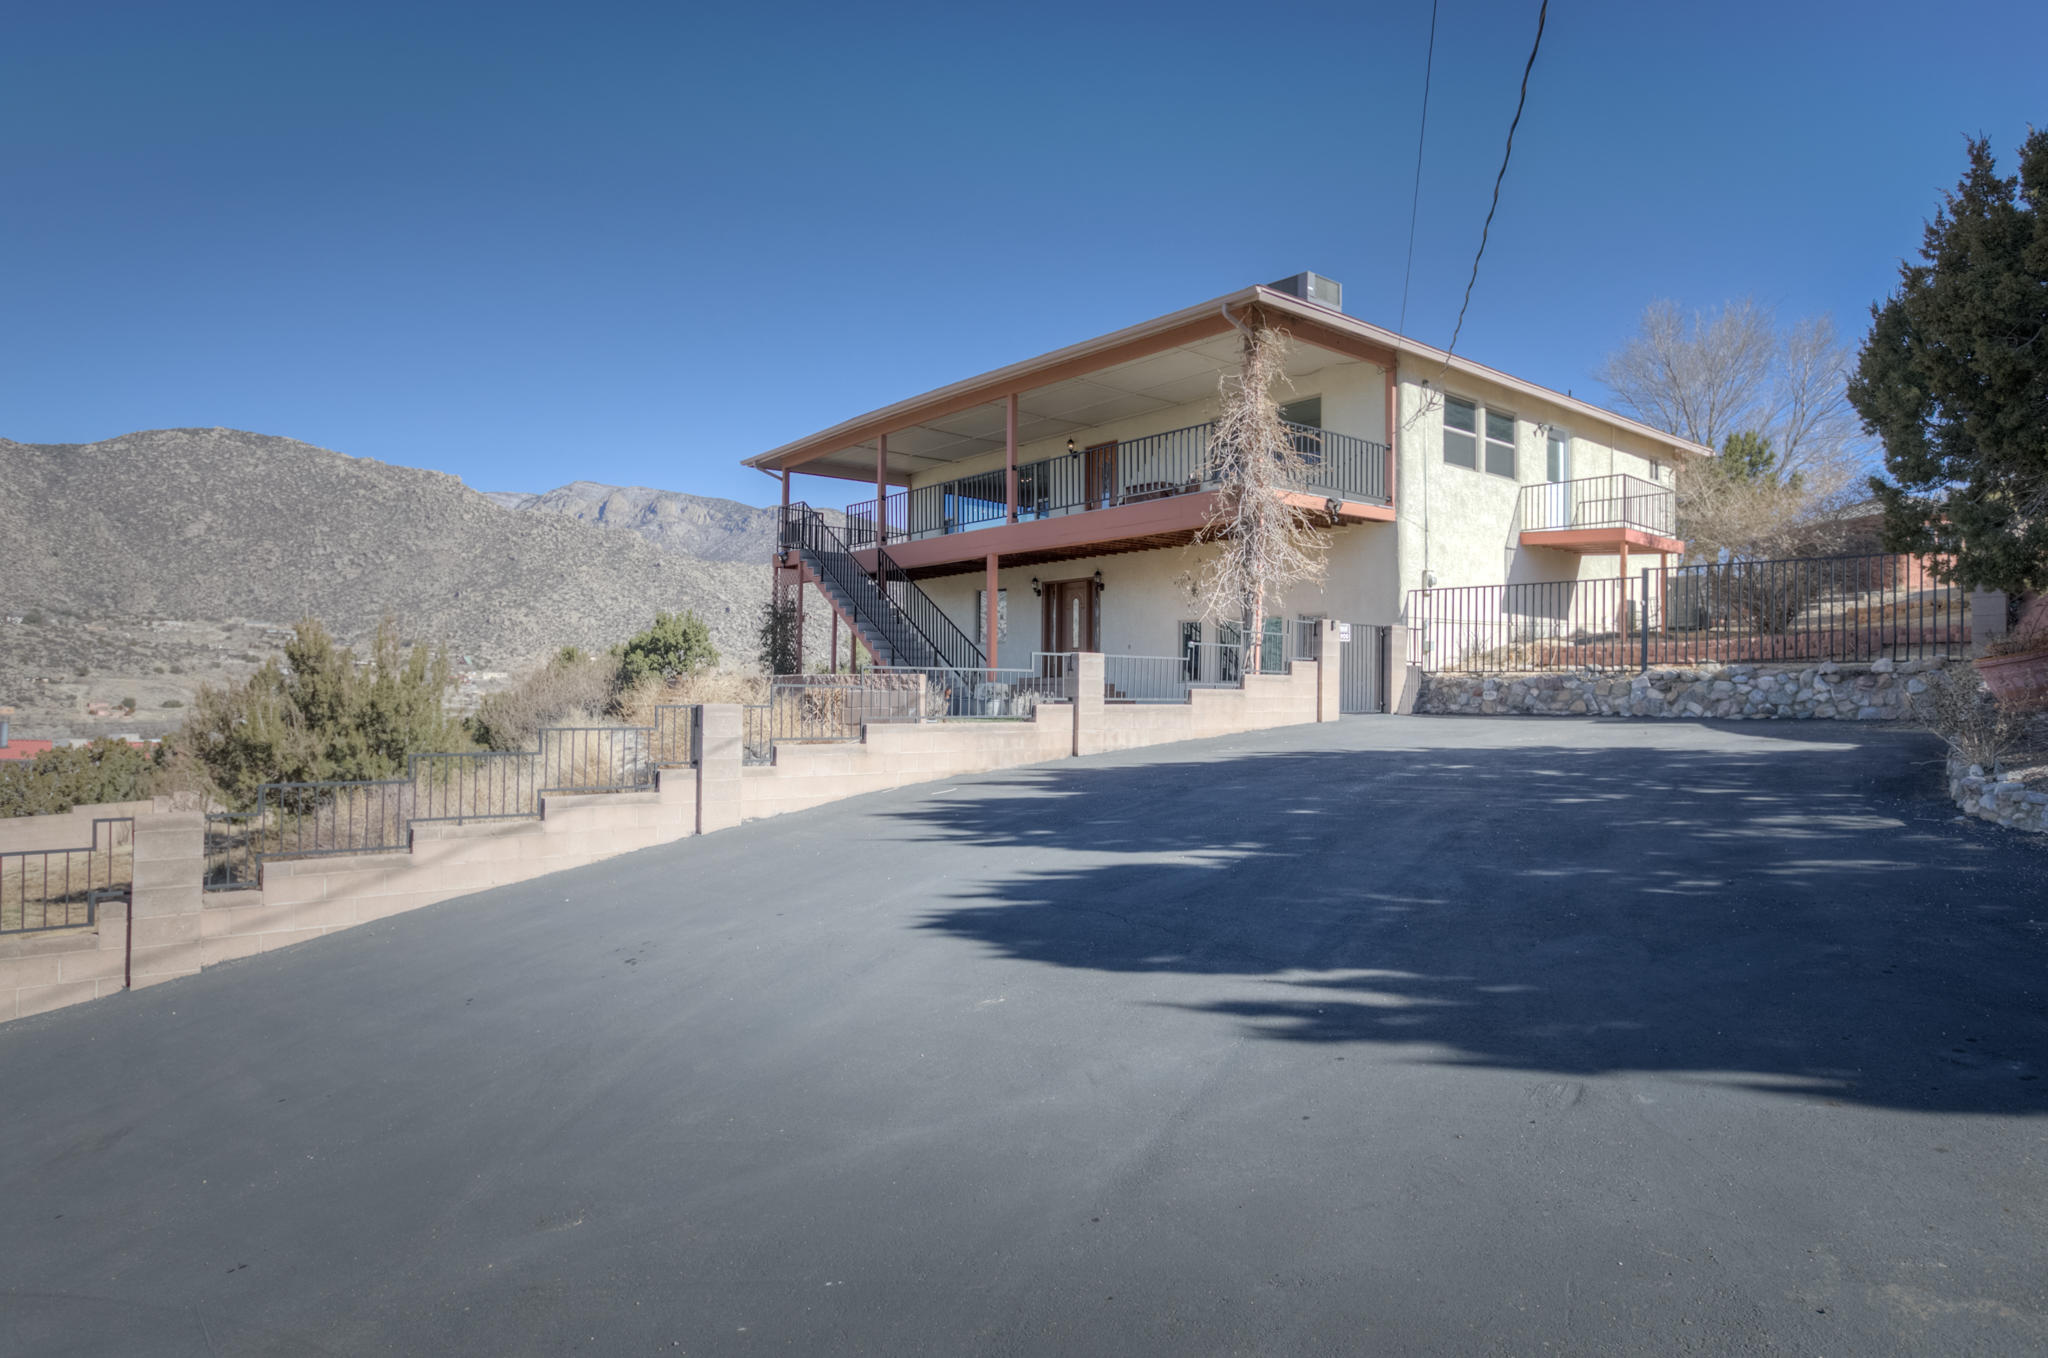 Welcome home to your own private retreat/Horse property at the base of the canyon!  2 acres of land with horse stalls and panoramic 360 degree views! Situated at the top of the hill, this home has so much to offer.  Many many updates over the years make this home meticulously maintained and ready for a new owner.  This home has a reverse layout so that the main living space is upstairs with large floor to ceiling windows to take advantage of the views.  Cozy up in the living room with a pellet stove and relax! The kitchen has granite counters and plenty of storage. Downstairs has a game room complete with an old pool table from Fox's in the 1970's that will convey! There is an additional living area, bedroom, full bath